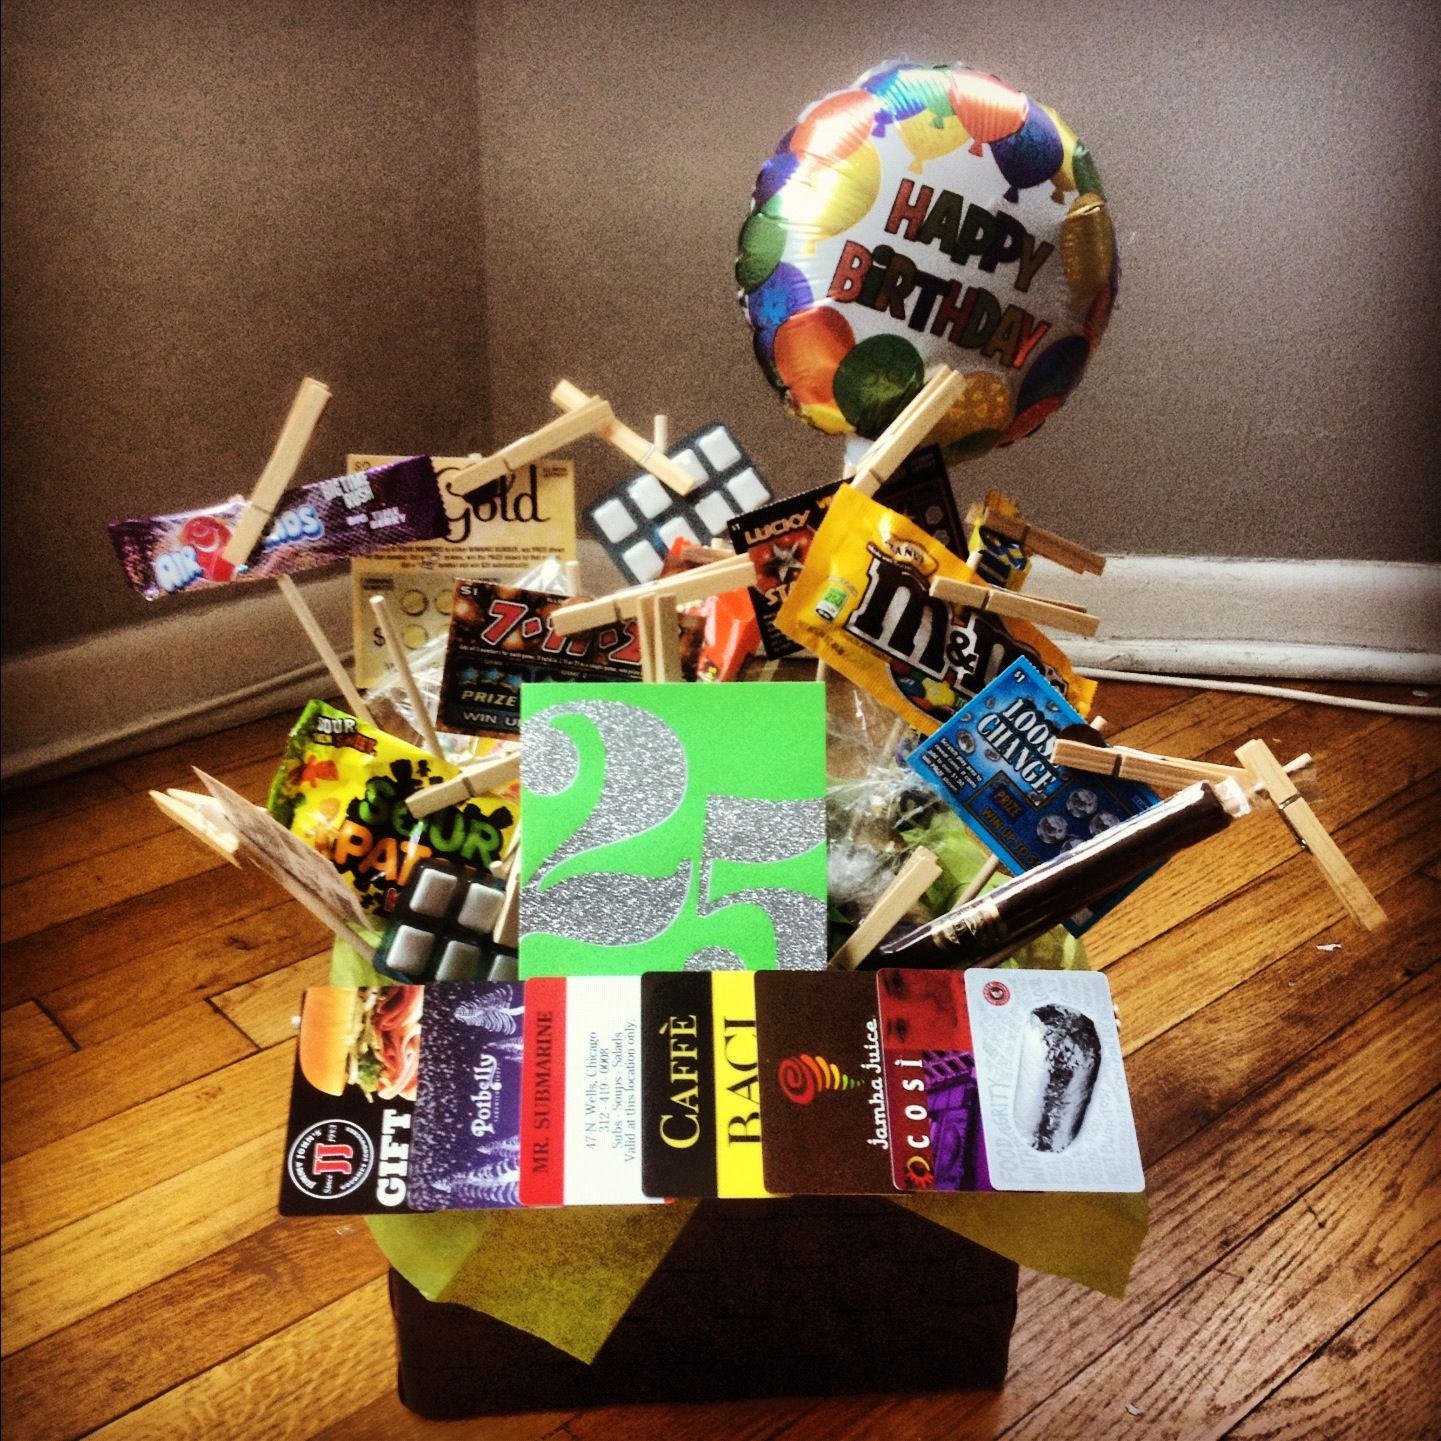 25 Gifts Gift Basket I Made For Kyles 25th Birthday